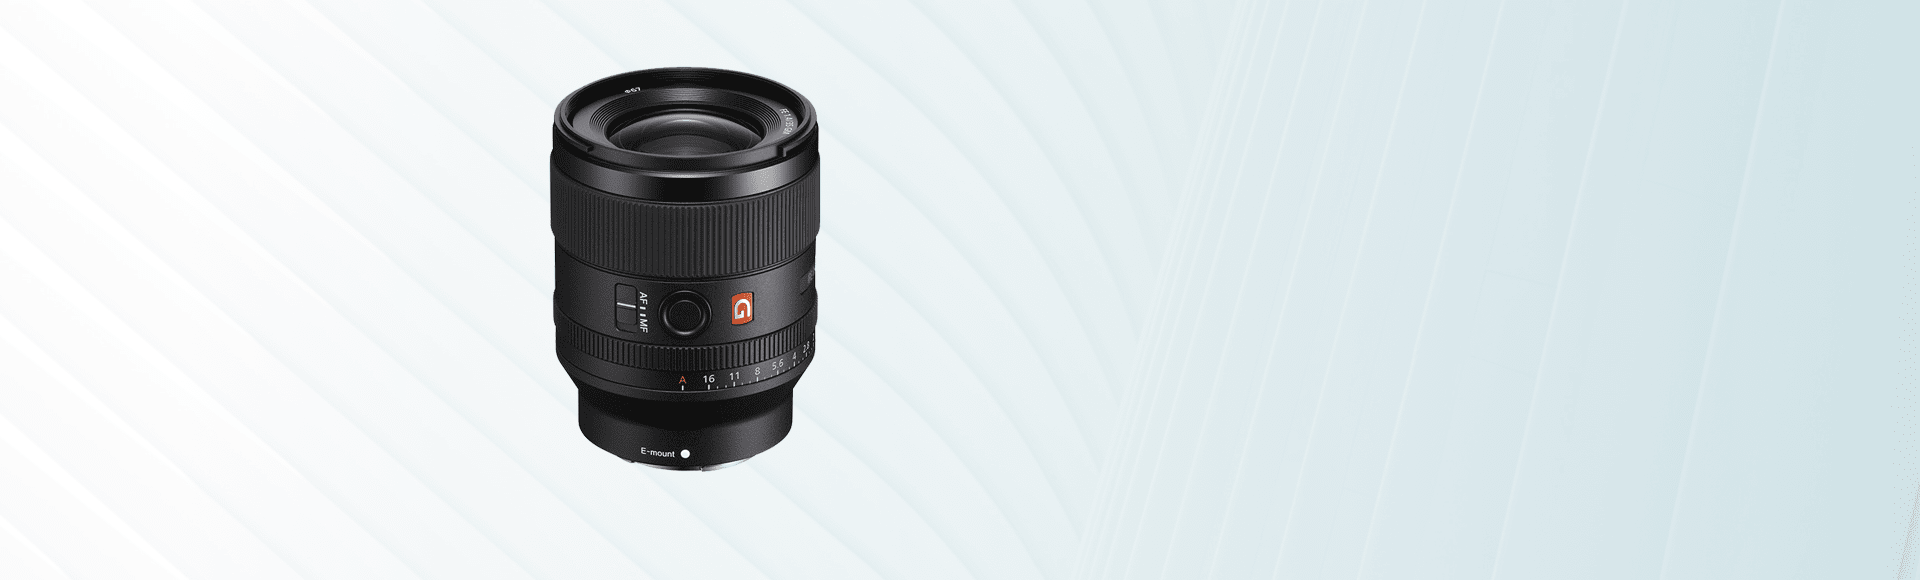 Sony Announces FE 35mm F1.4 GM